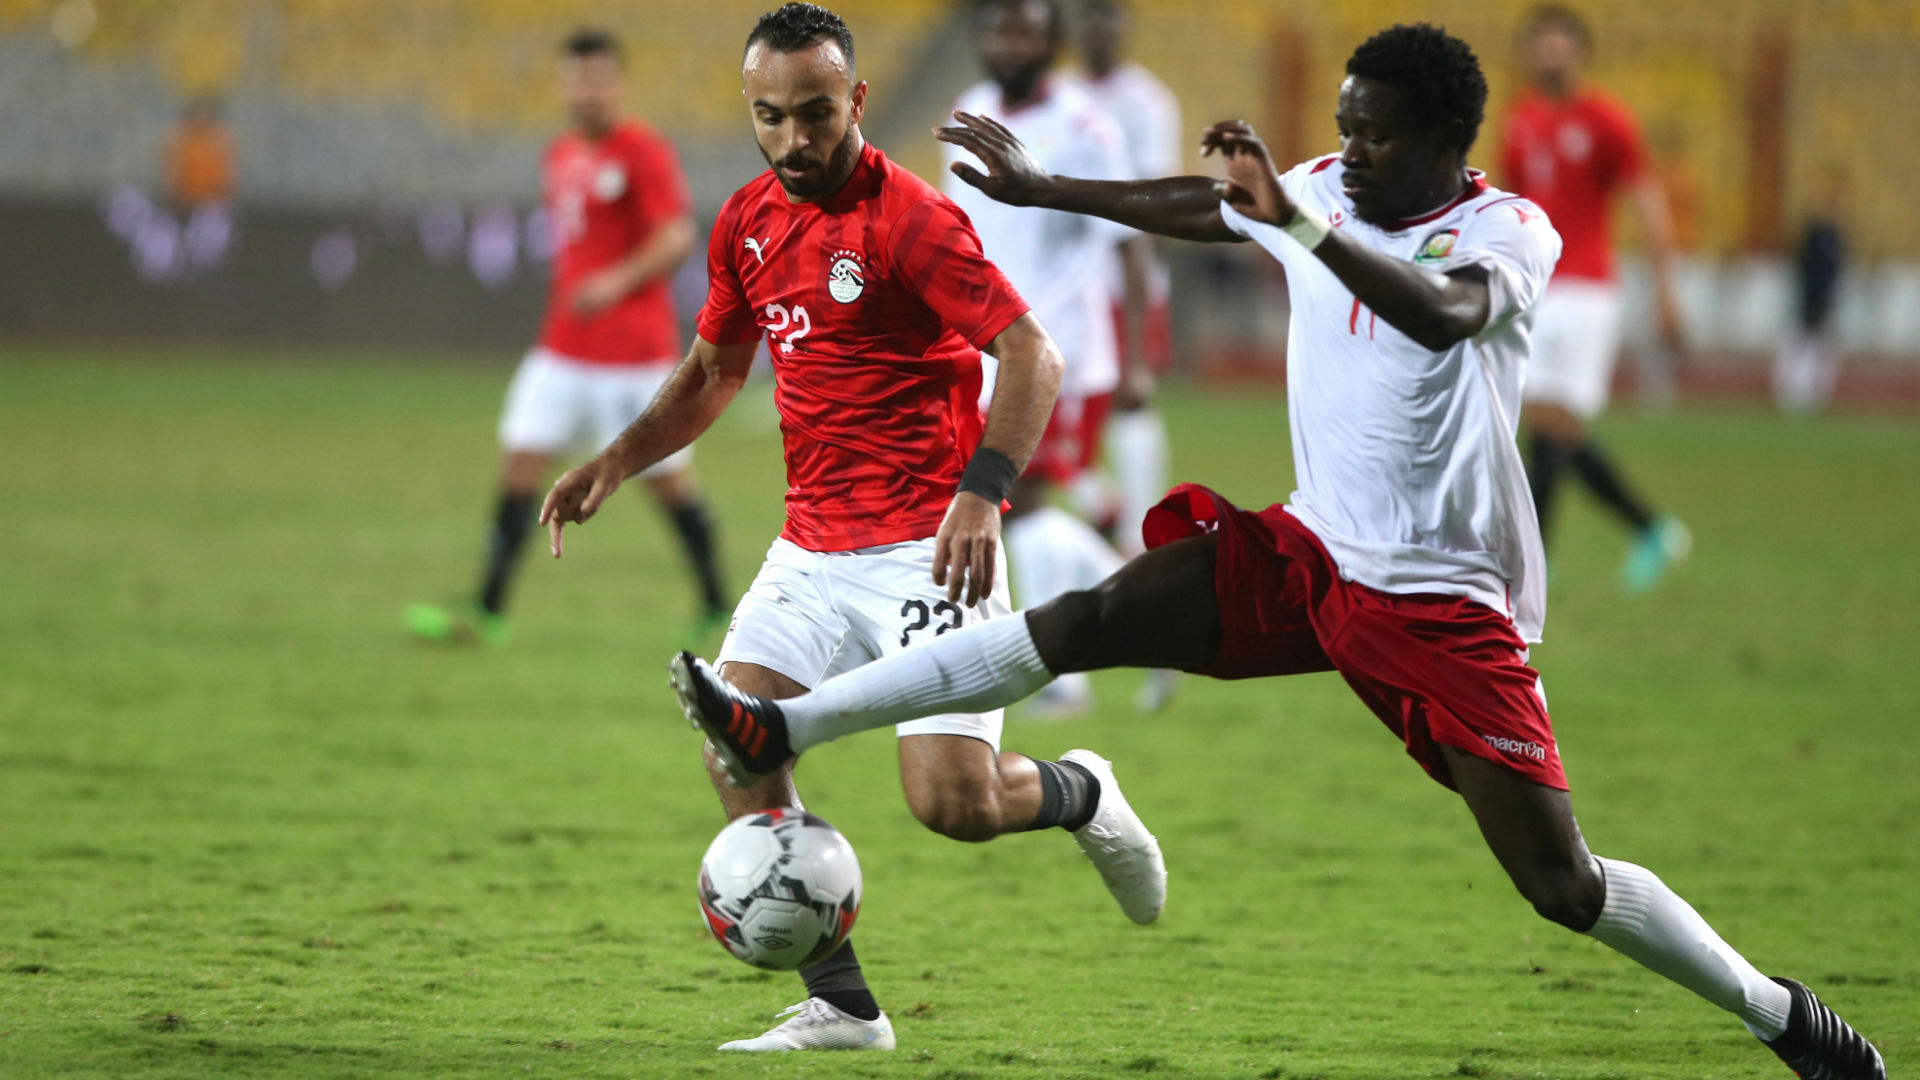 Afcon 2021 Qualifier: Harambee Stars' result in Egypt 'perfect' - Dawo